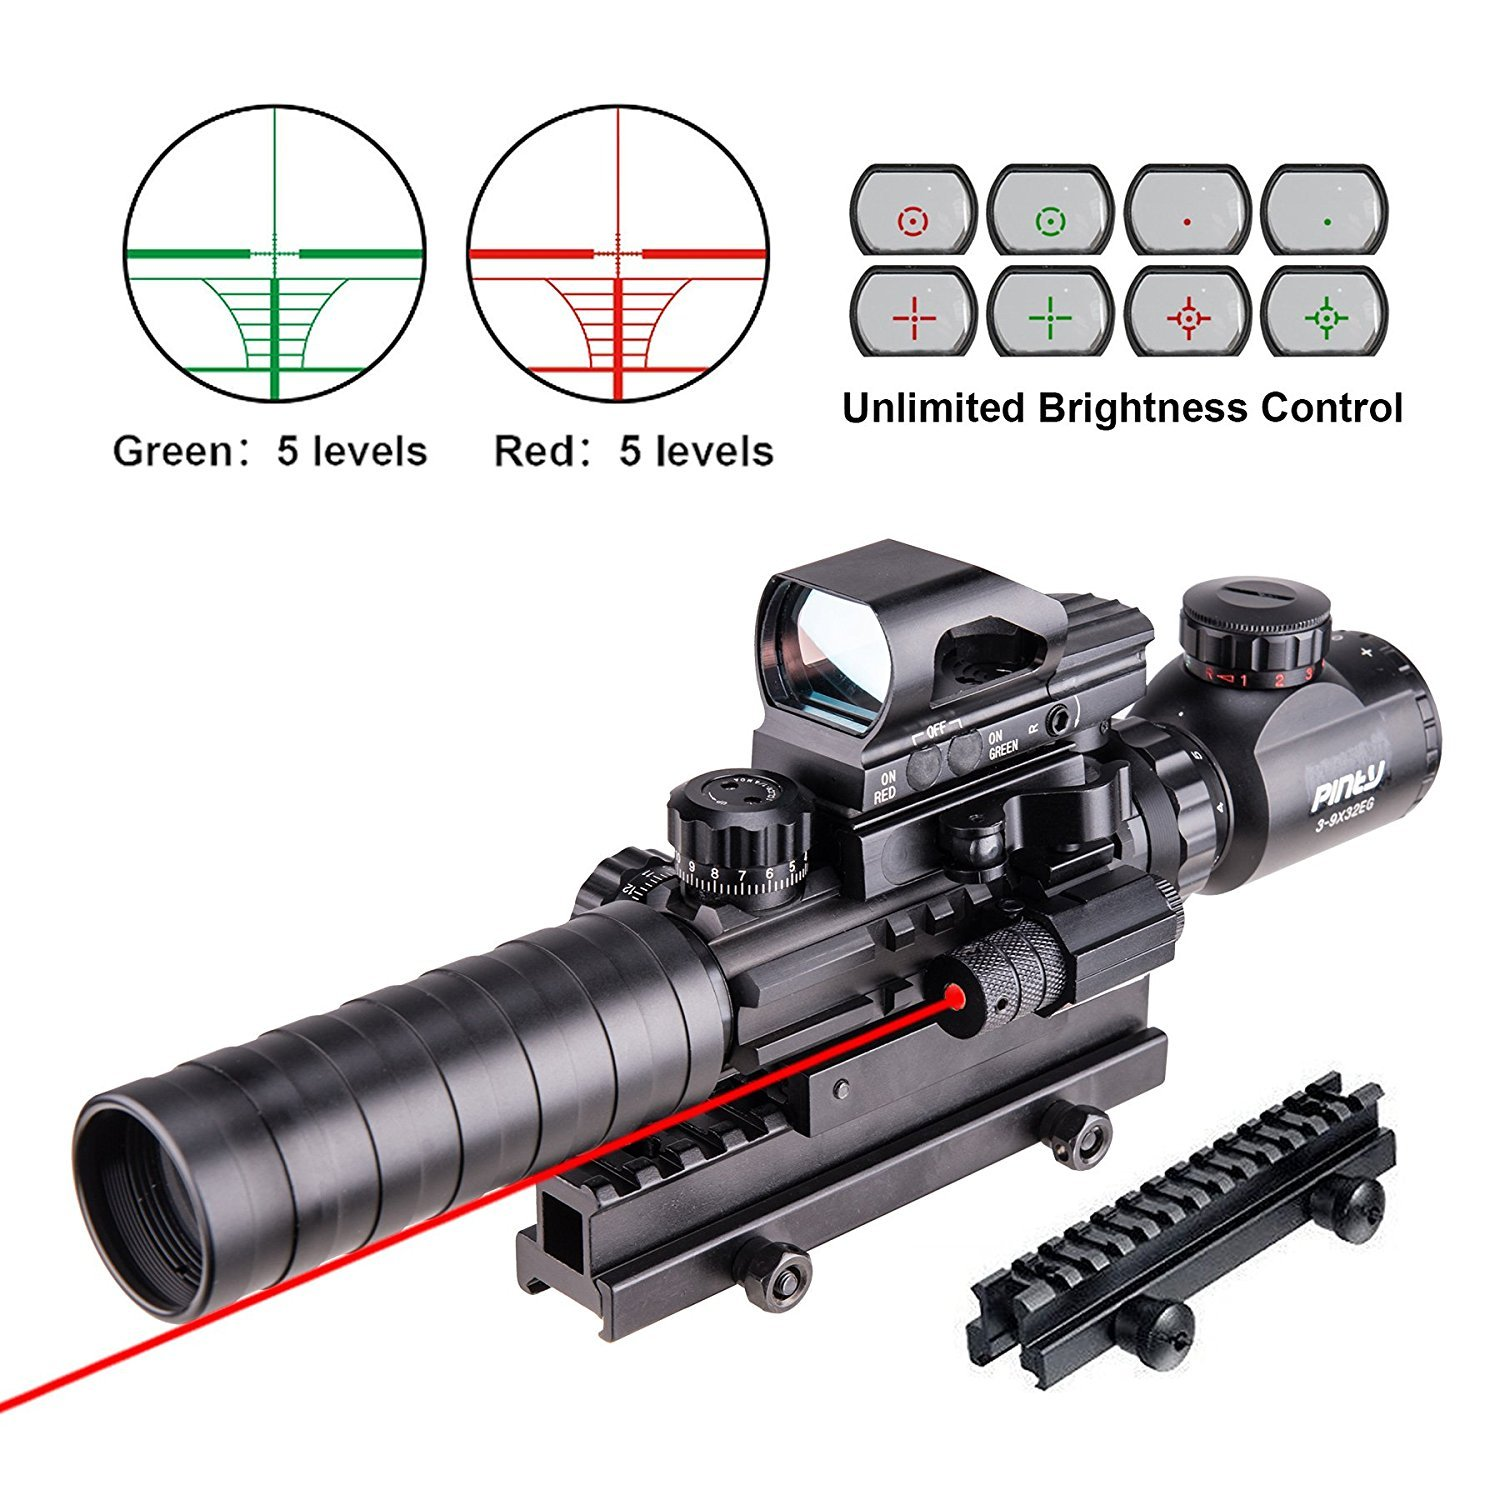 "Pinty AR15 Rifle Scope 3-9x32EG Rangefinder Illuminated Reflex Sight 4 Reticle Red&Green Quick Release Red Dot Laser Sight with 14 Slots 1"" Compact High Riser Mount"